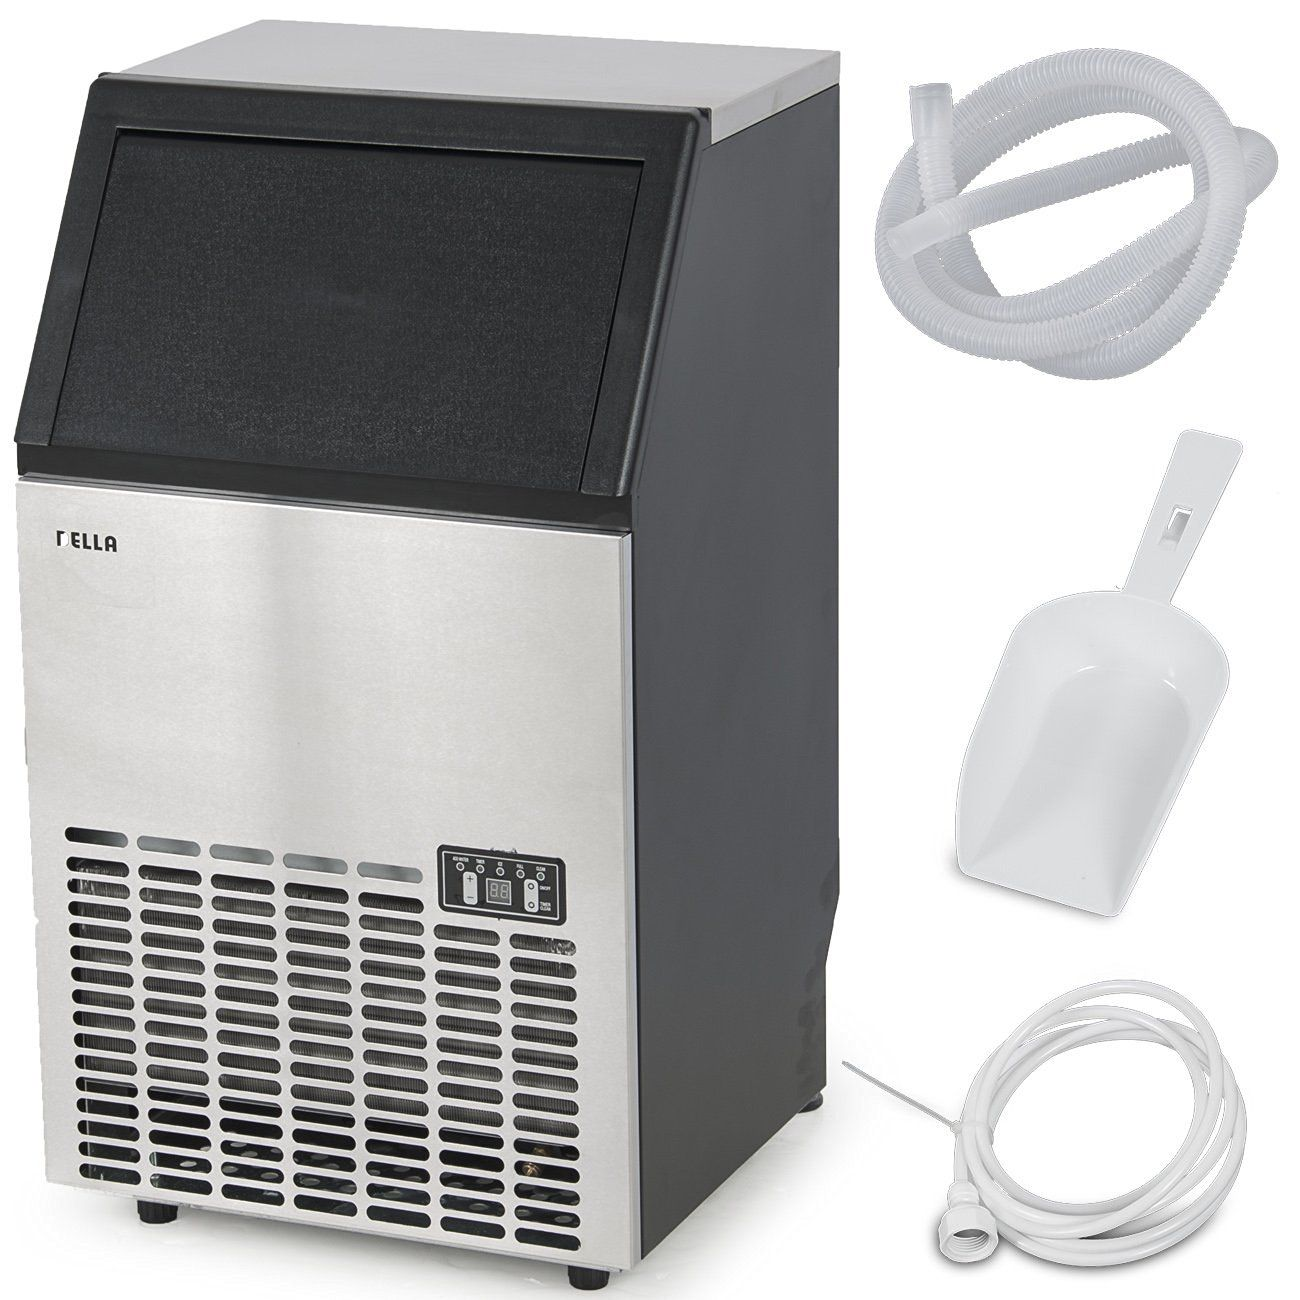 Della 048 Gm 48196 Stainless Steel Commercial Ice Maker